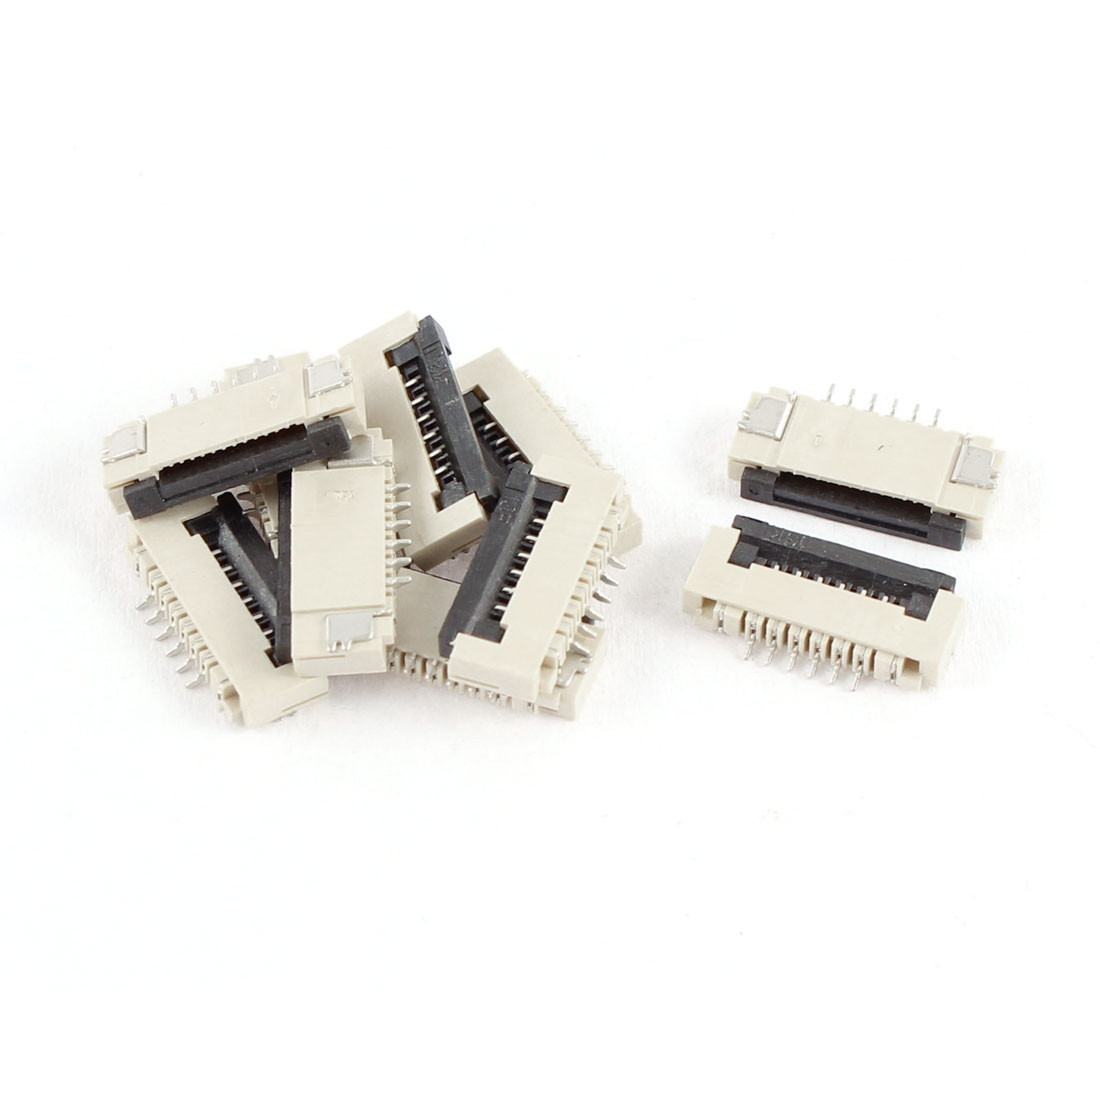 10Pcs Clamshell Type Bottom Port 6Pin 1.0mm Pitch FFC FPC Sockets Connector